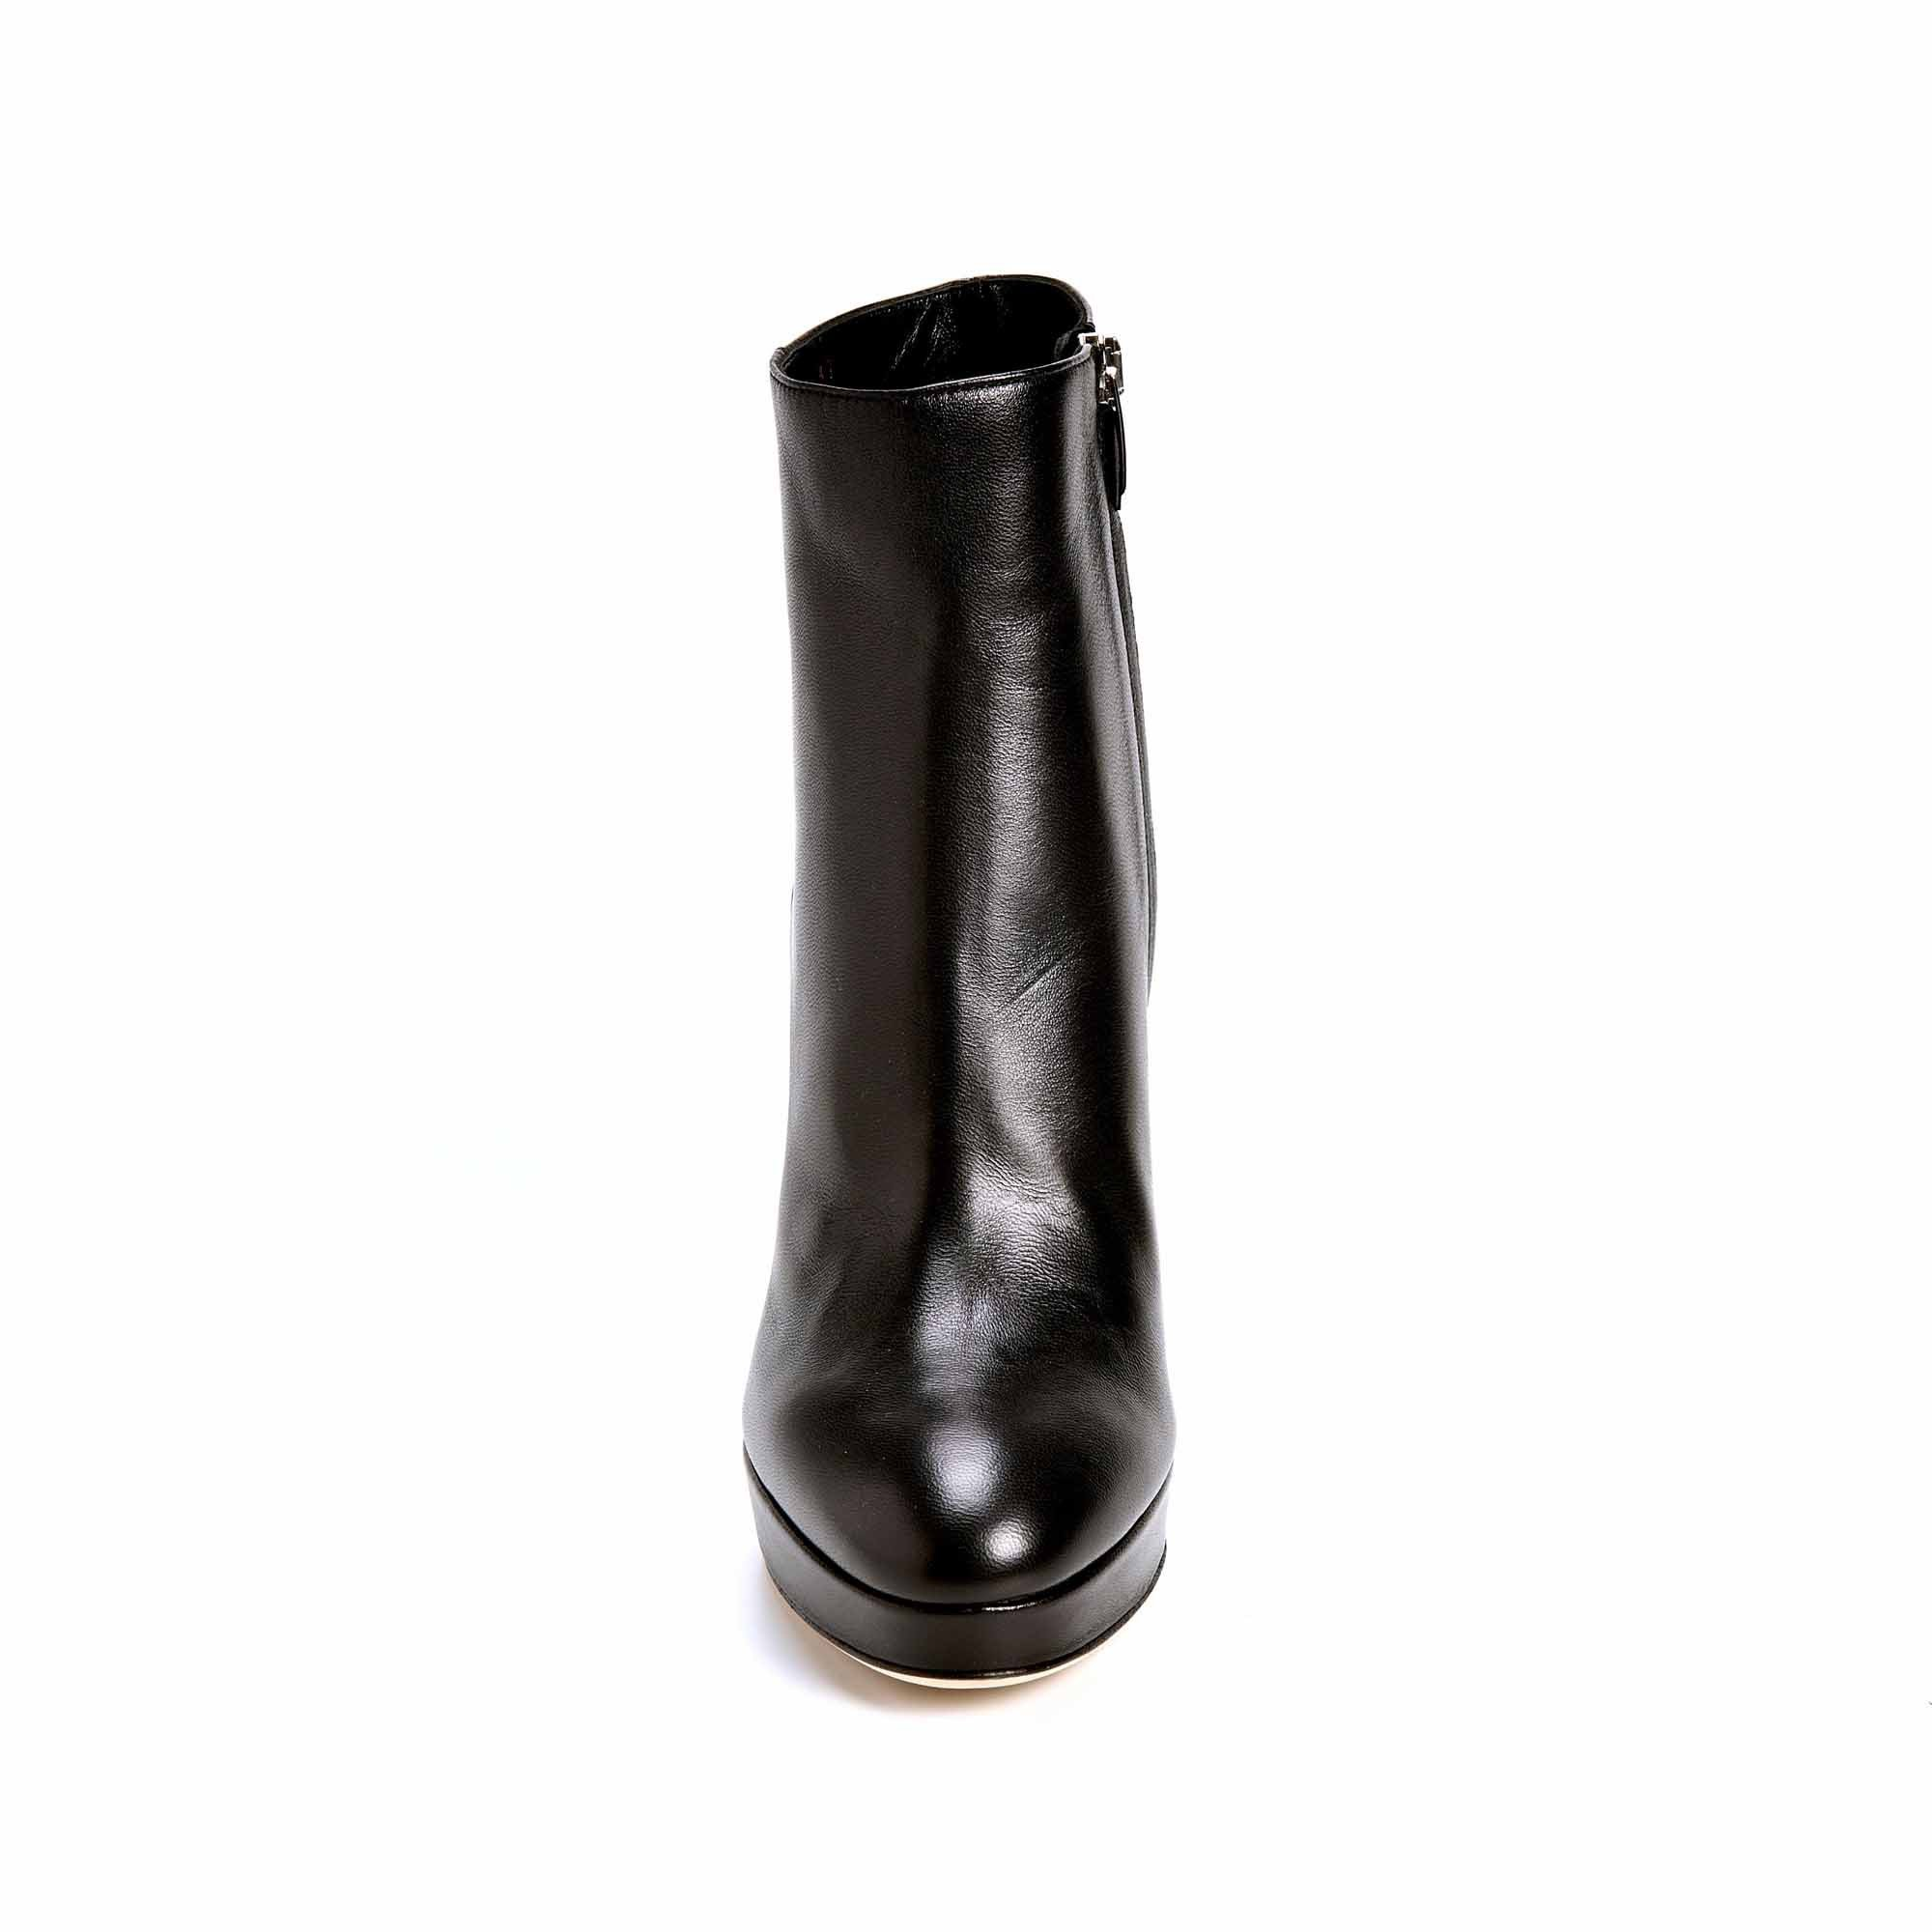 A 85450 BOOTS NOIRES SERGIO ROSSI